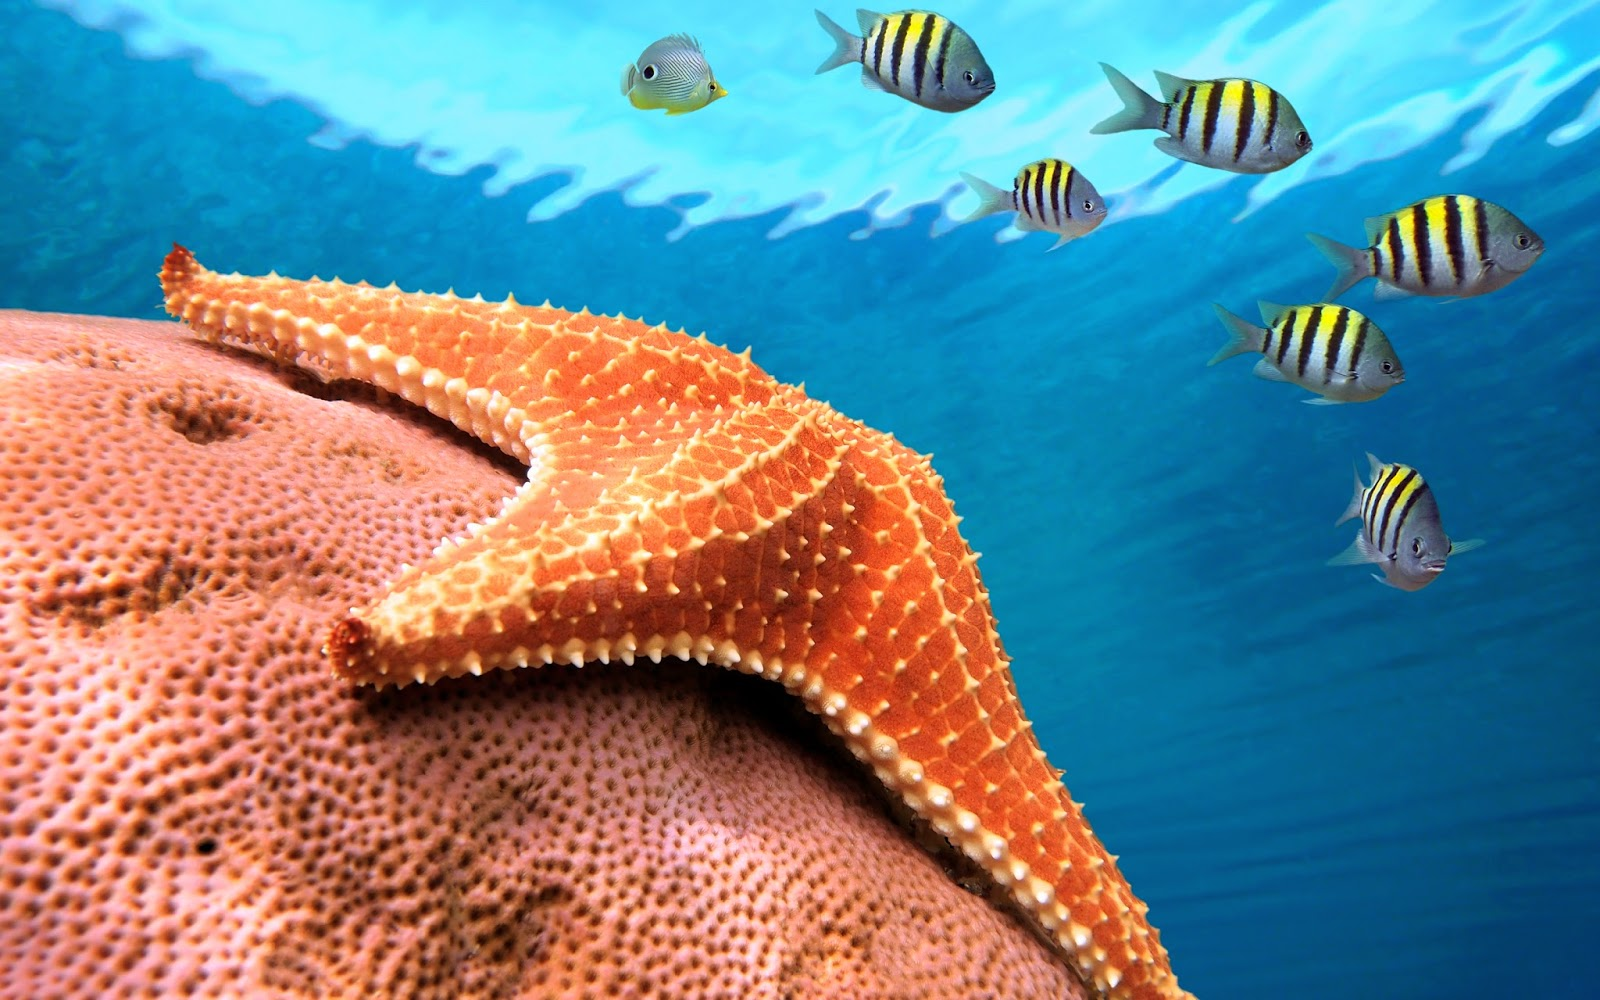 Starfish Wallpapers Hd Beautiful Wallpapers Collection 2018 HD Wallpapers Download Free Images Wallpaper [1000image.com]